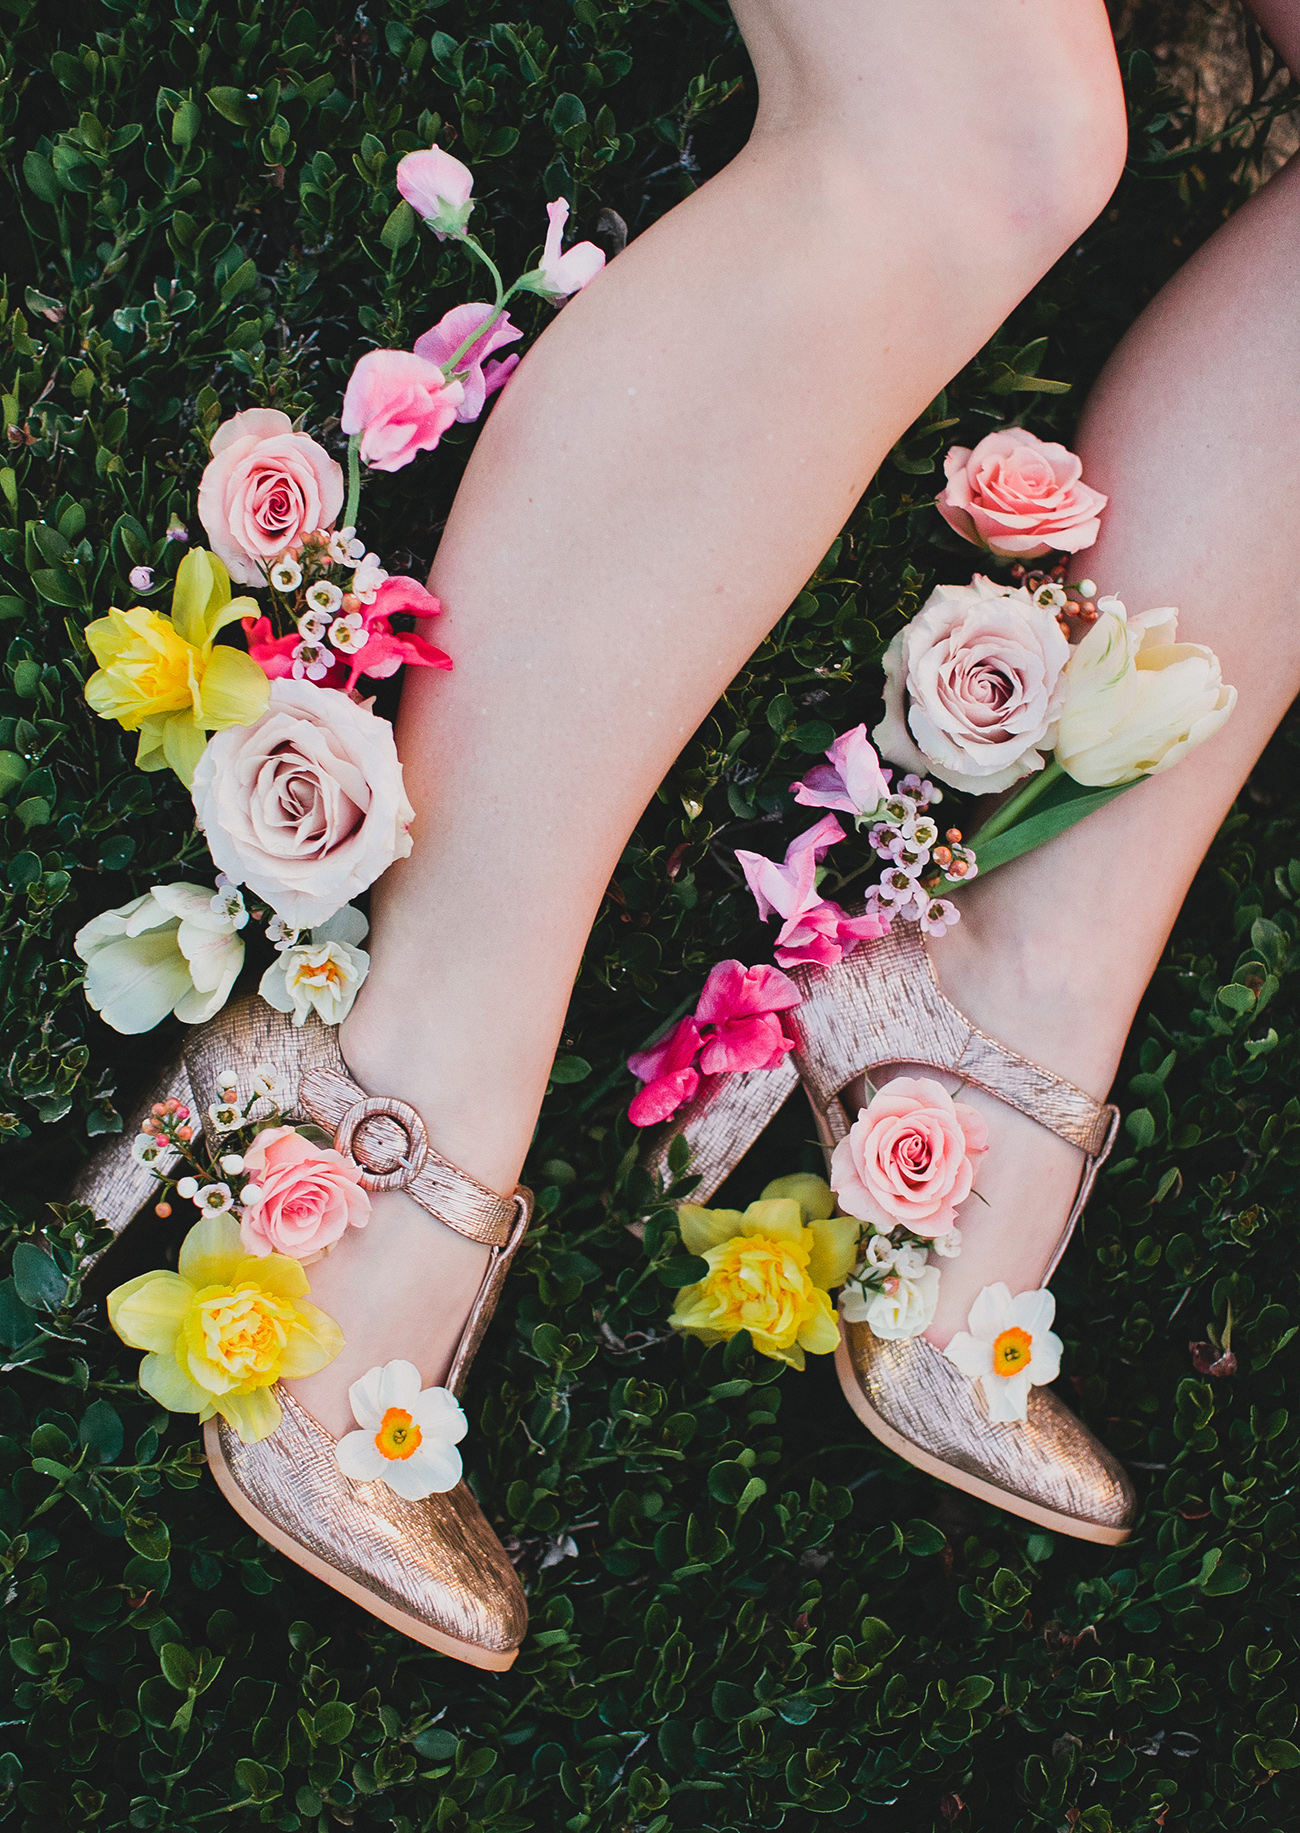 Gold heels with flowers surrounding